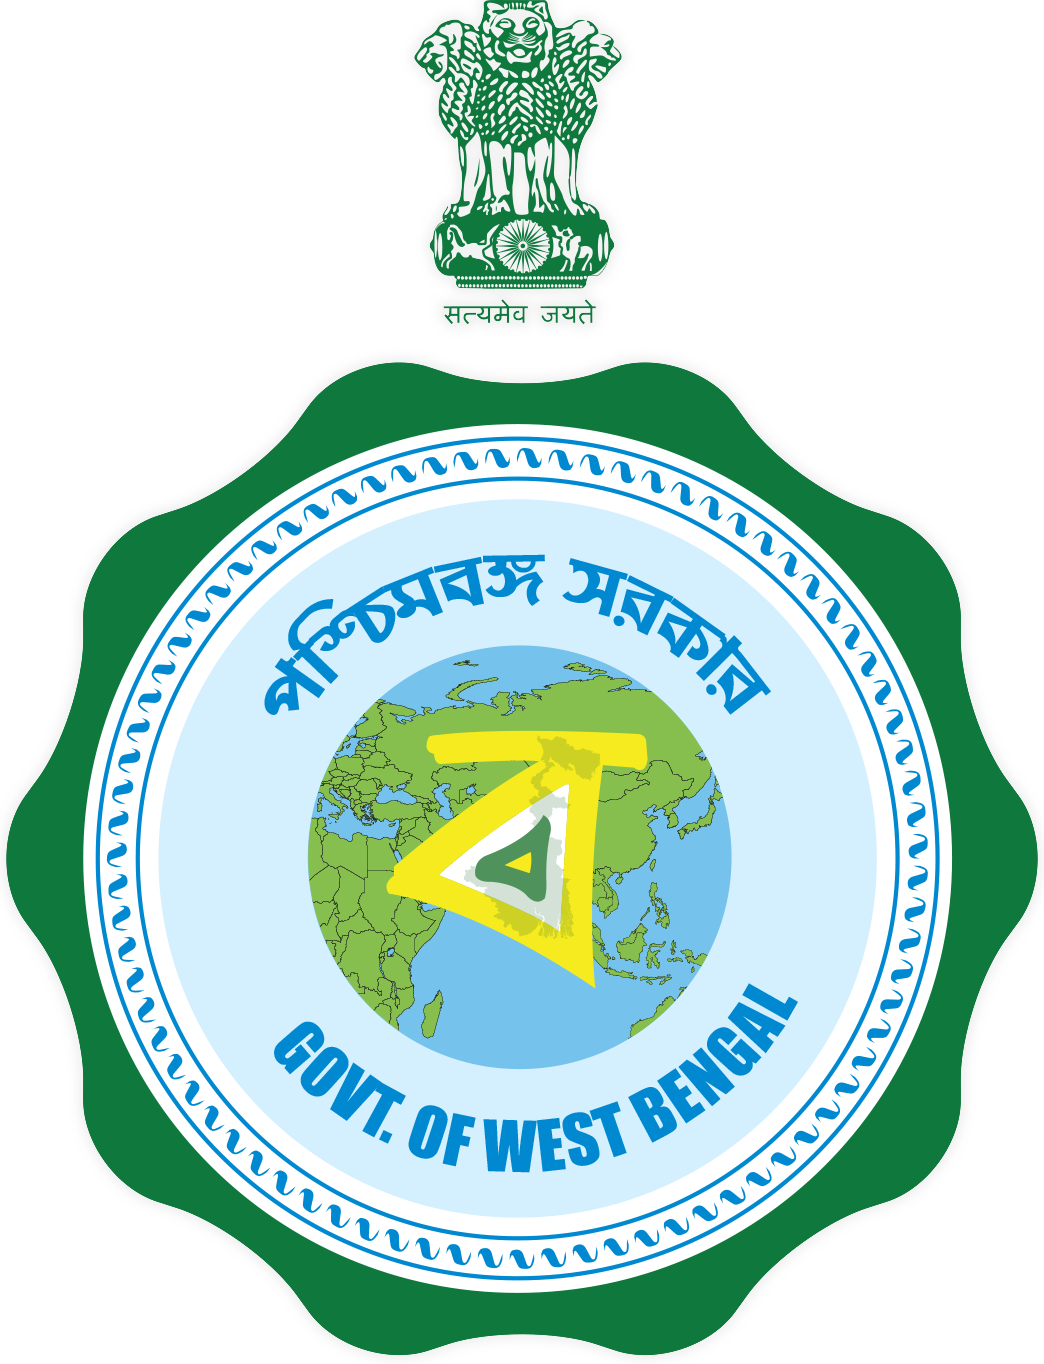 Government of West Bengal - Wikipedia